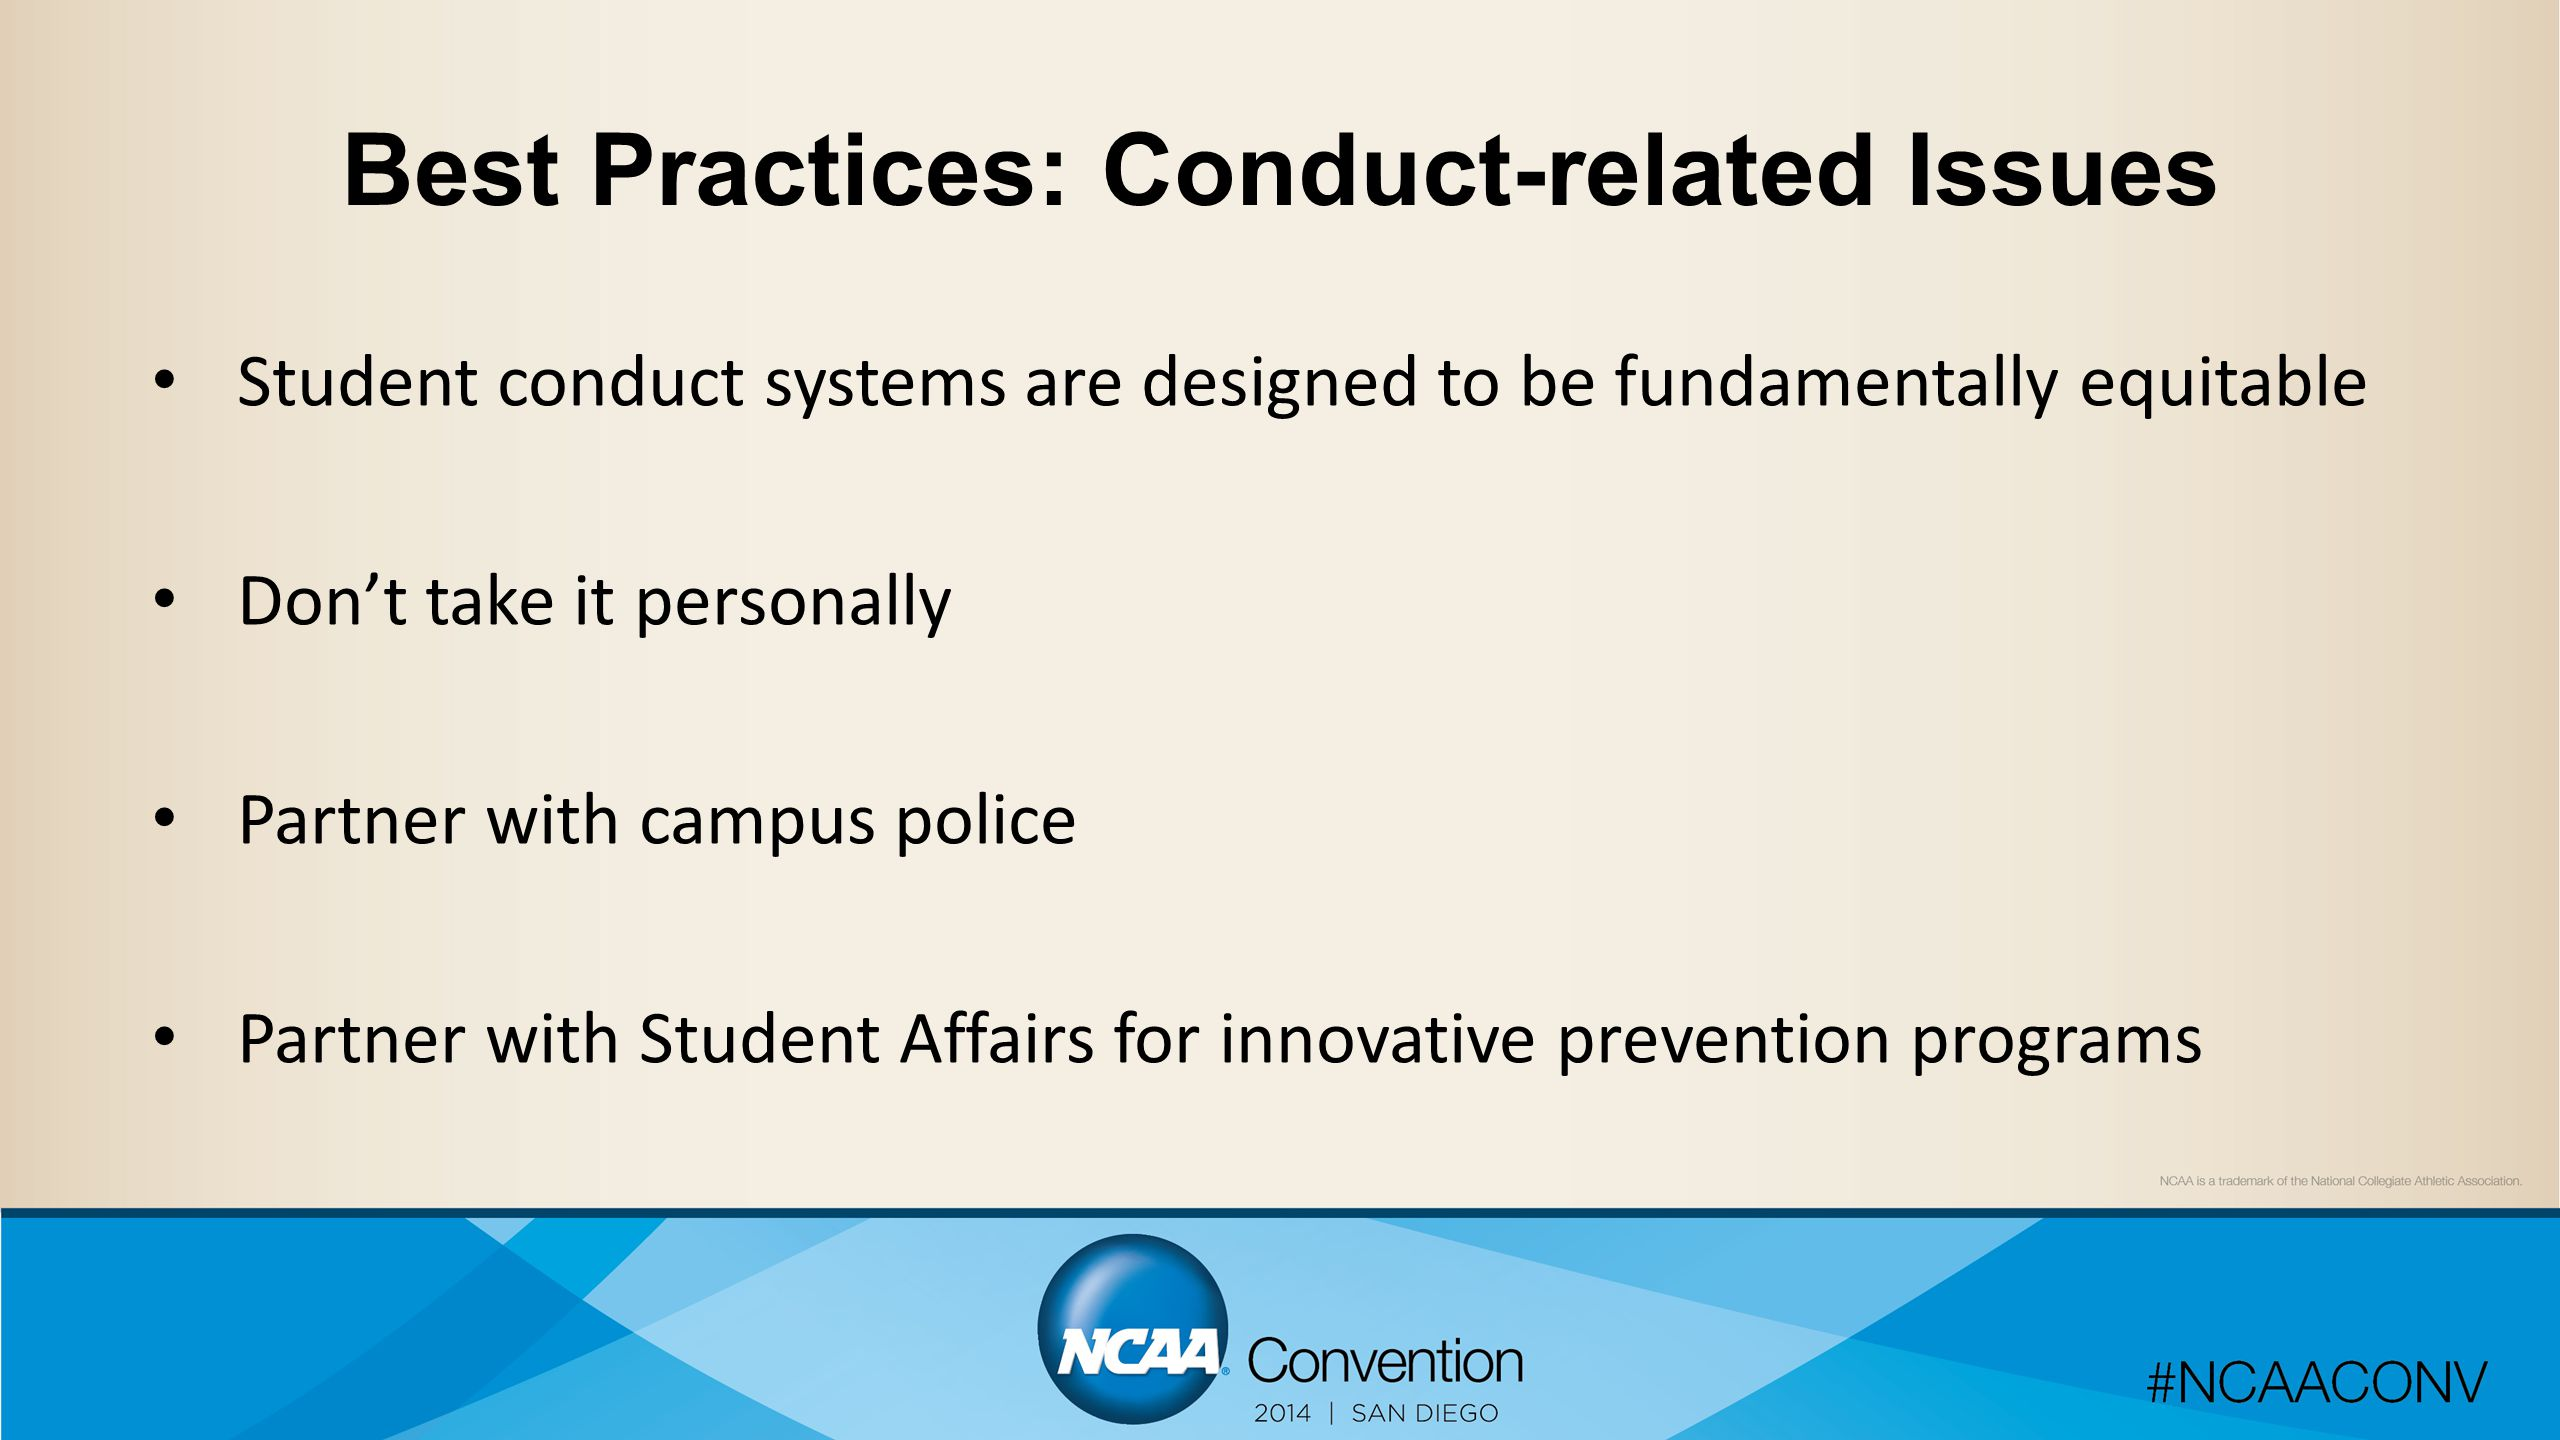 Best Practices: Conduct-related Issues Student conduct systems are designed to be fundamentally equitable Don't take it personally Partner with campus police Partner with Student Affairs for innovative prevention programs